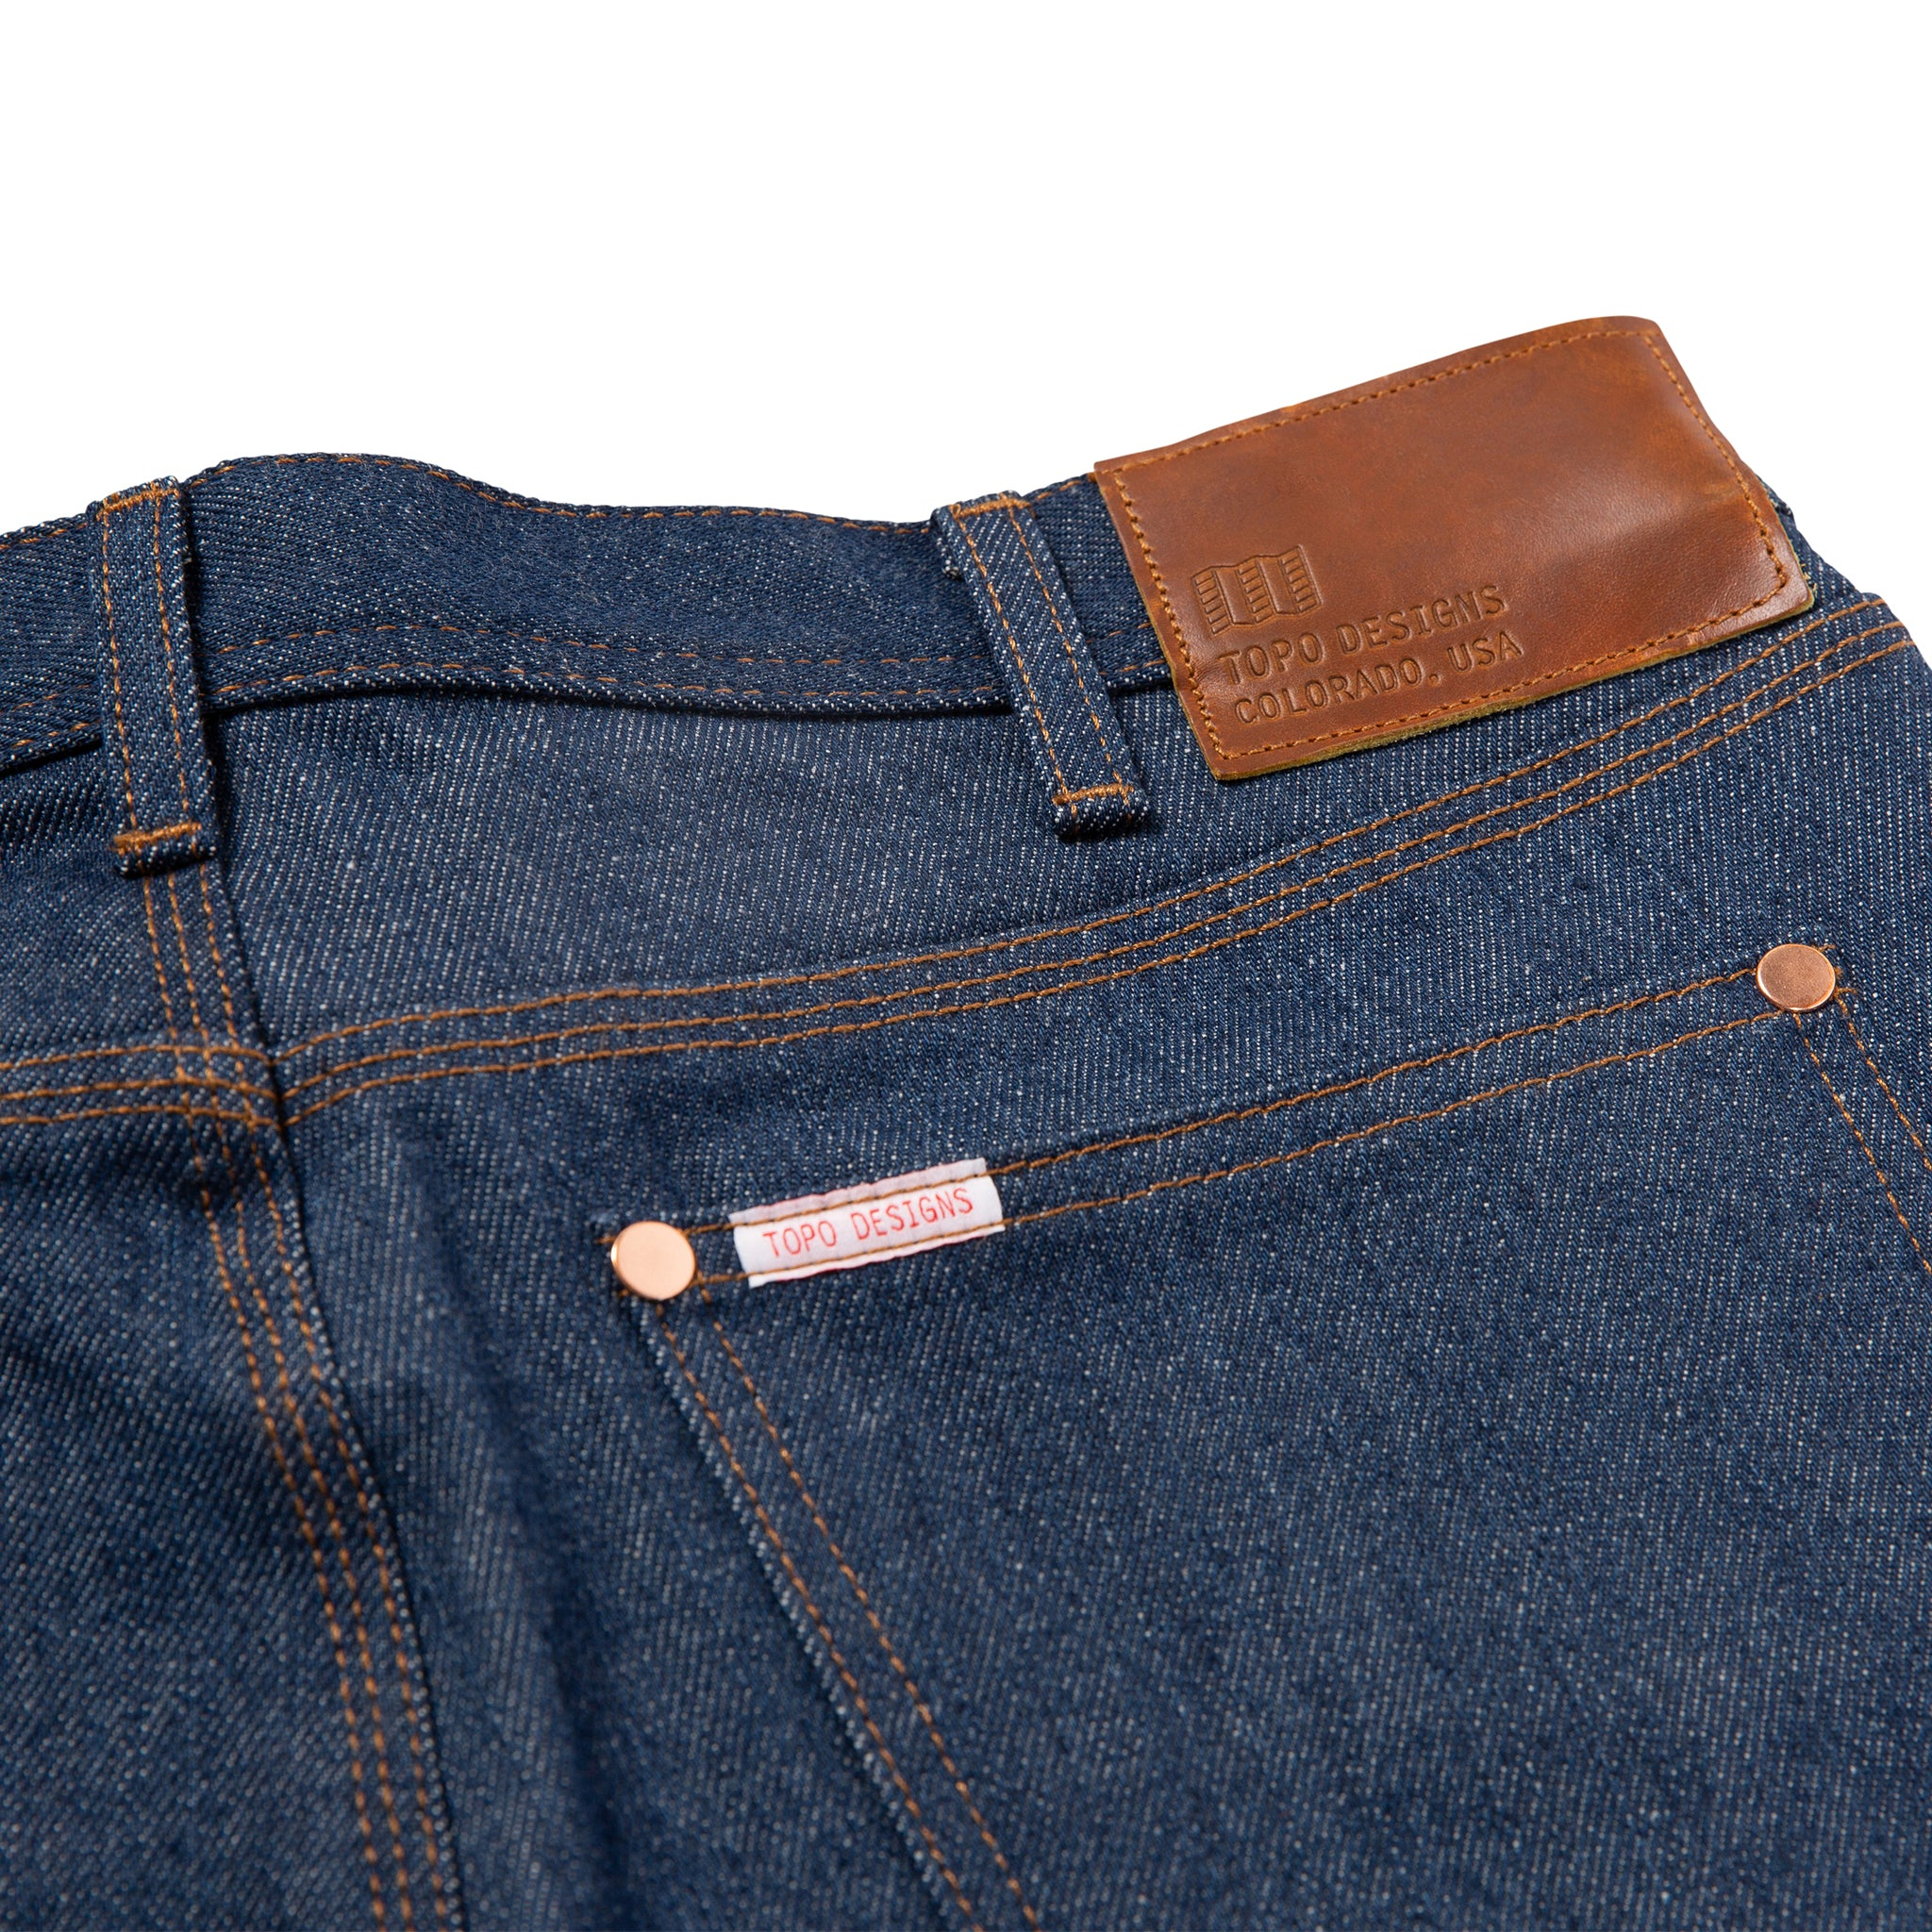 5 Pocket Pants - Men's